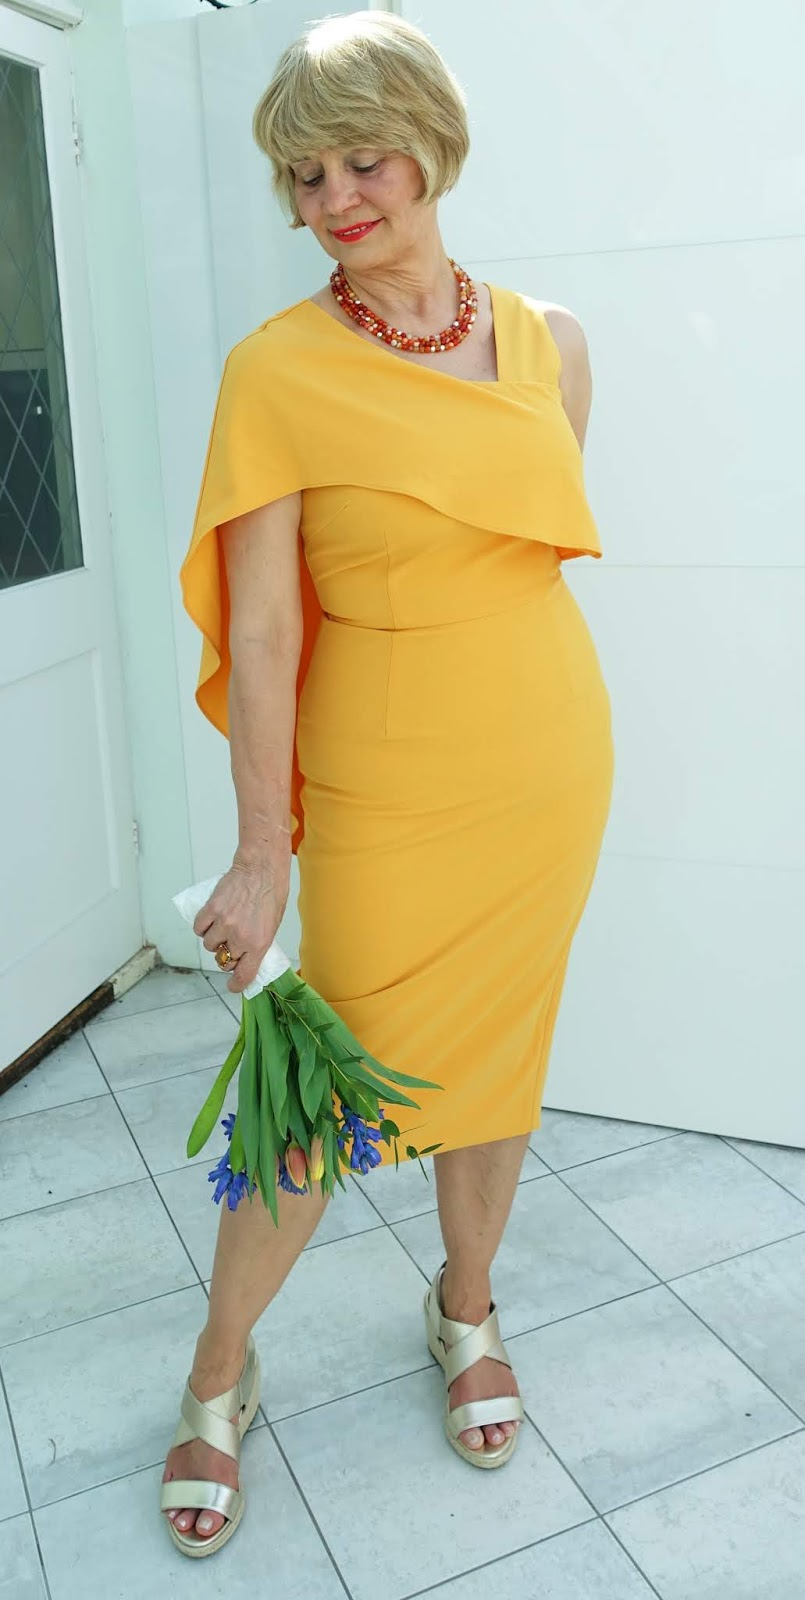 Gail Hanlon from Is This Mutton in tangerine dress by Lavish Alice and sandals by Vionic